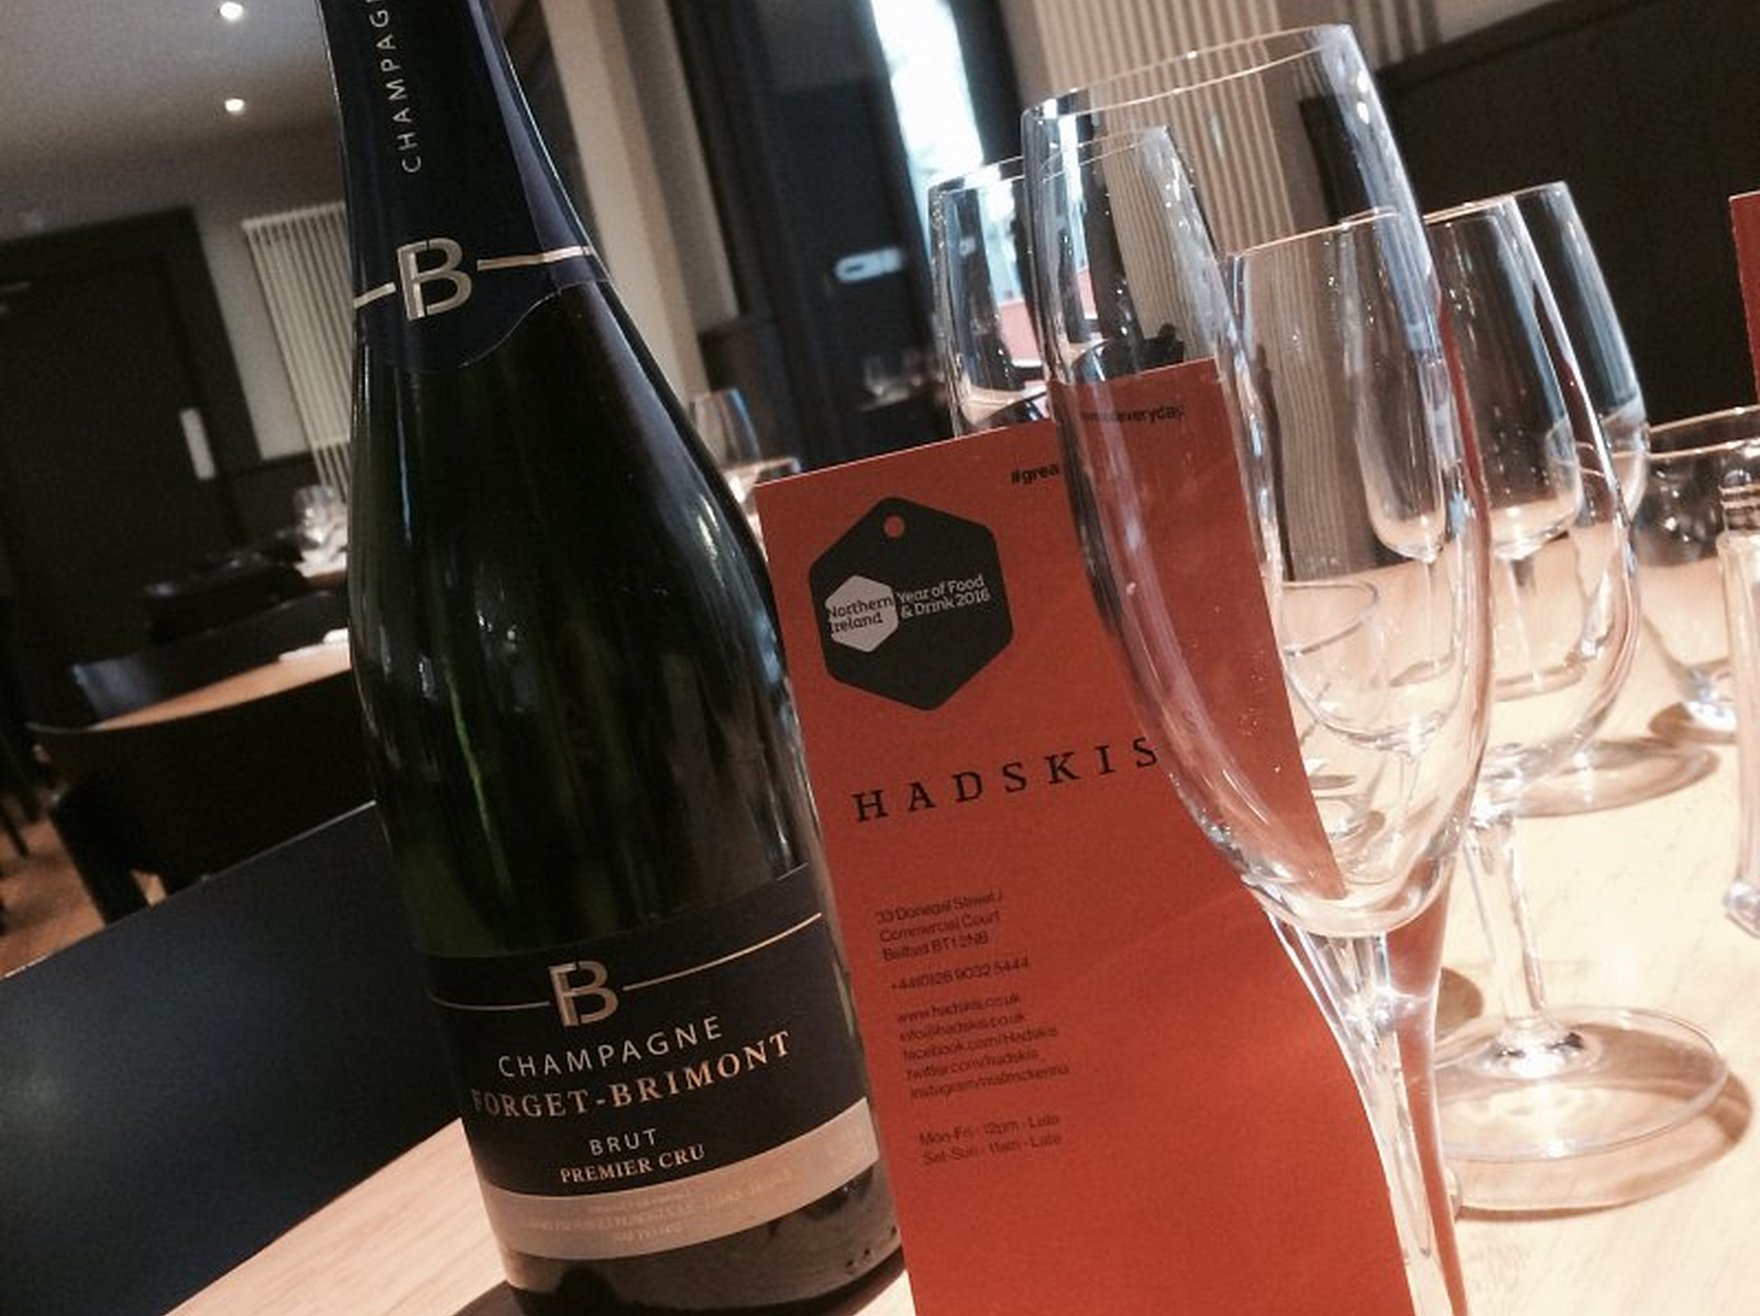 Win a bottle of Champagne in Hadskis!